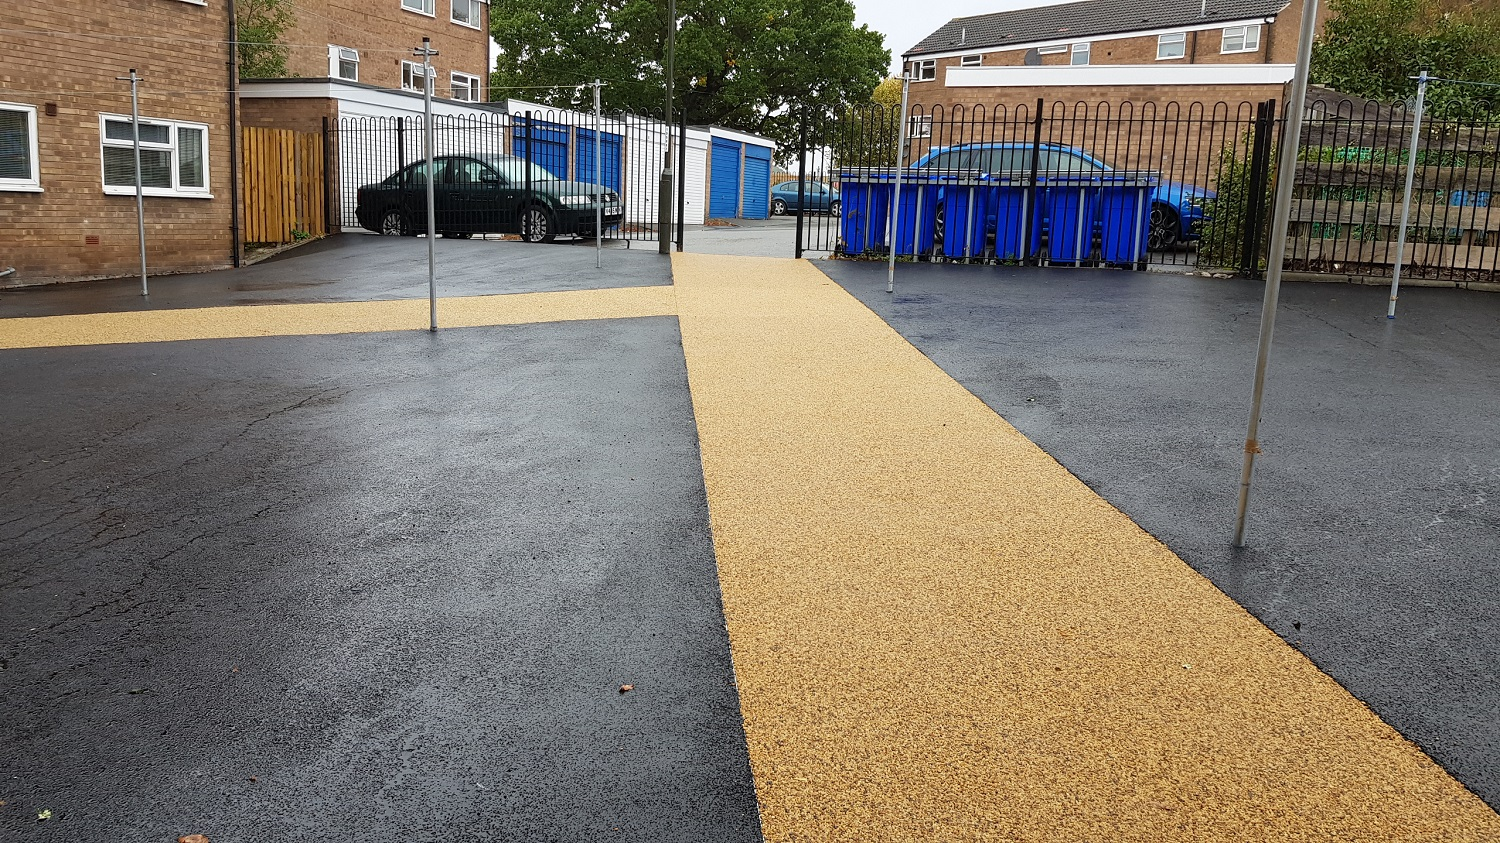 P14 Tarmac and Resin Bound Surfacing to Drying Area at Loundsley Green in Chesterfield